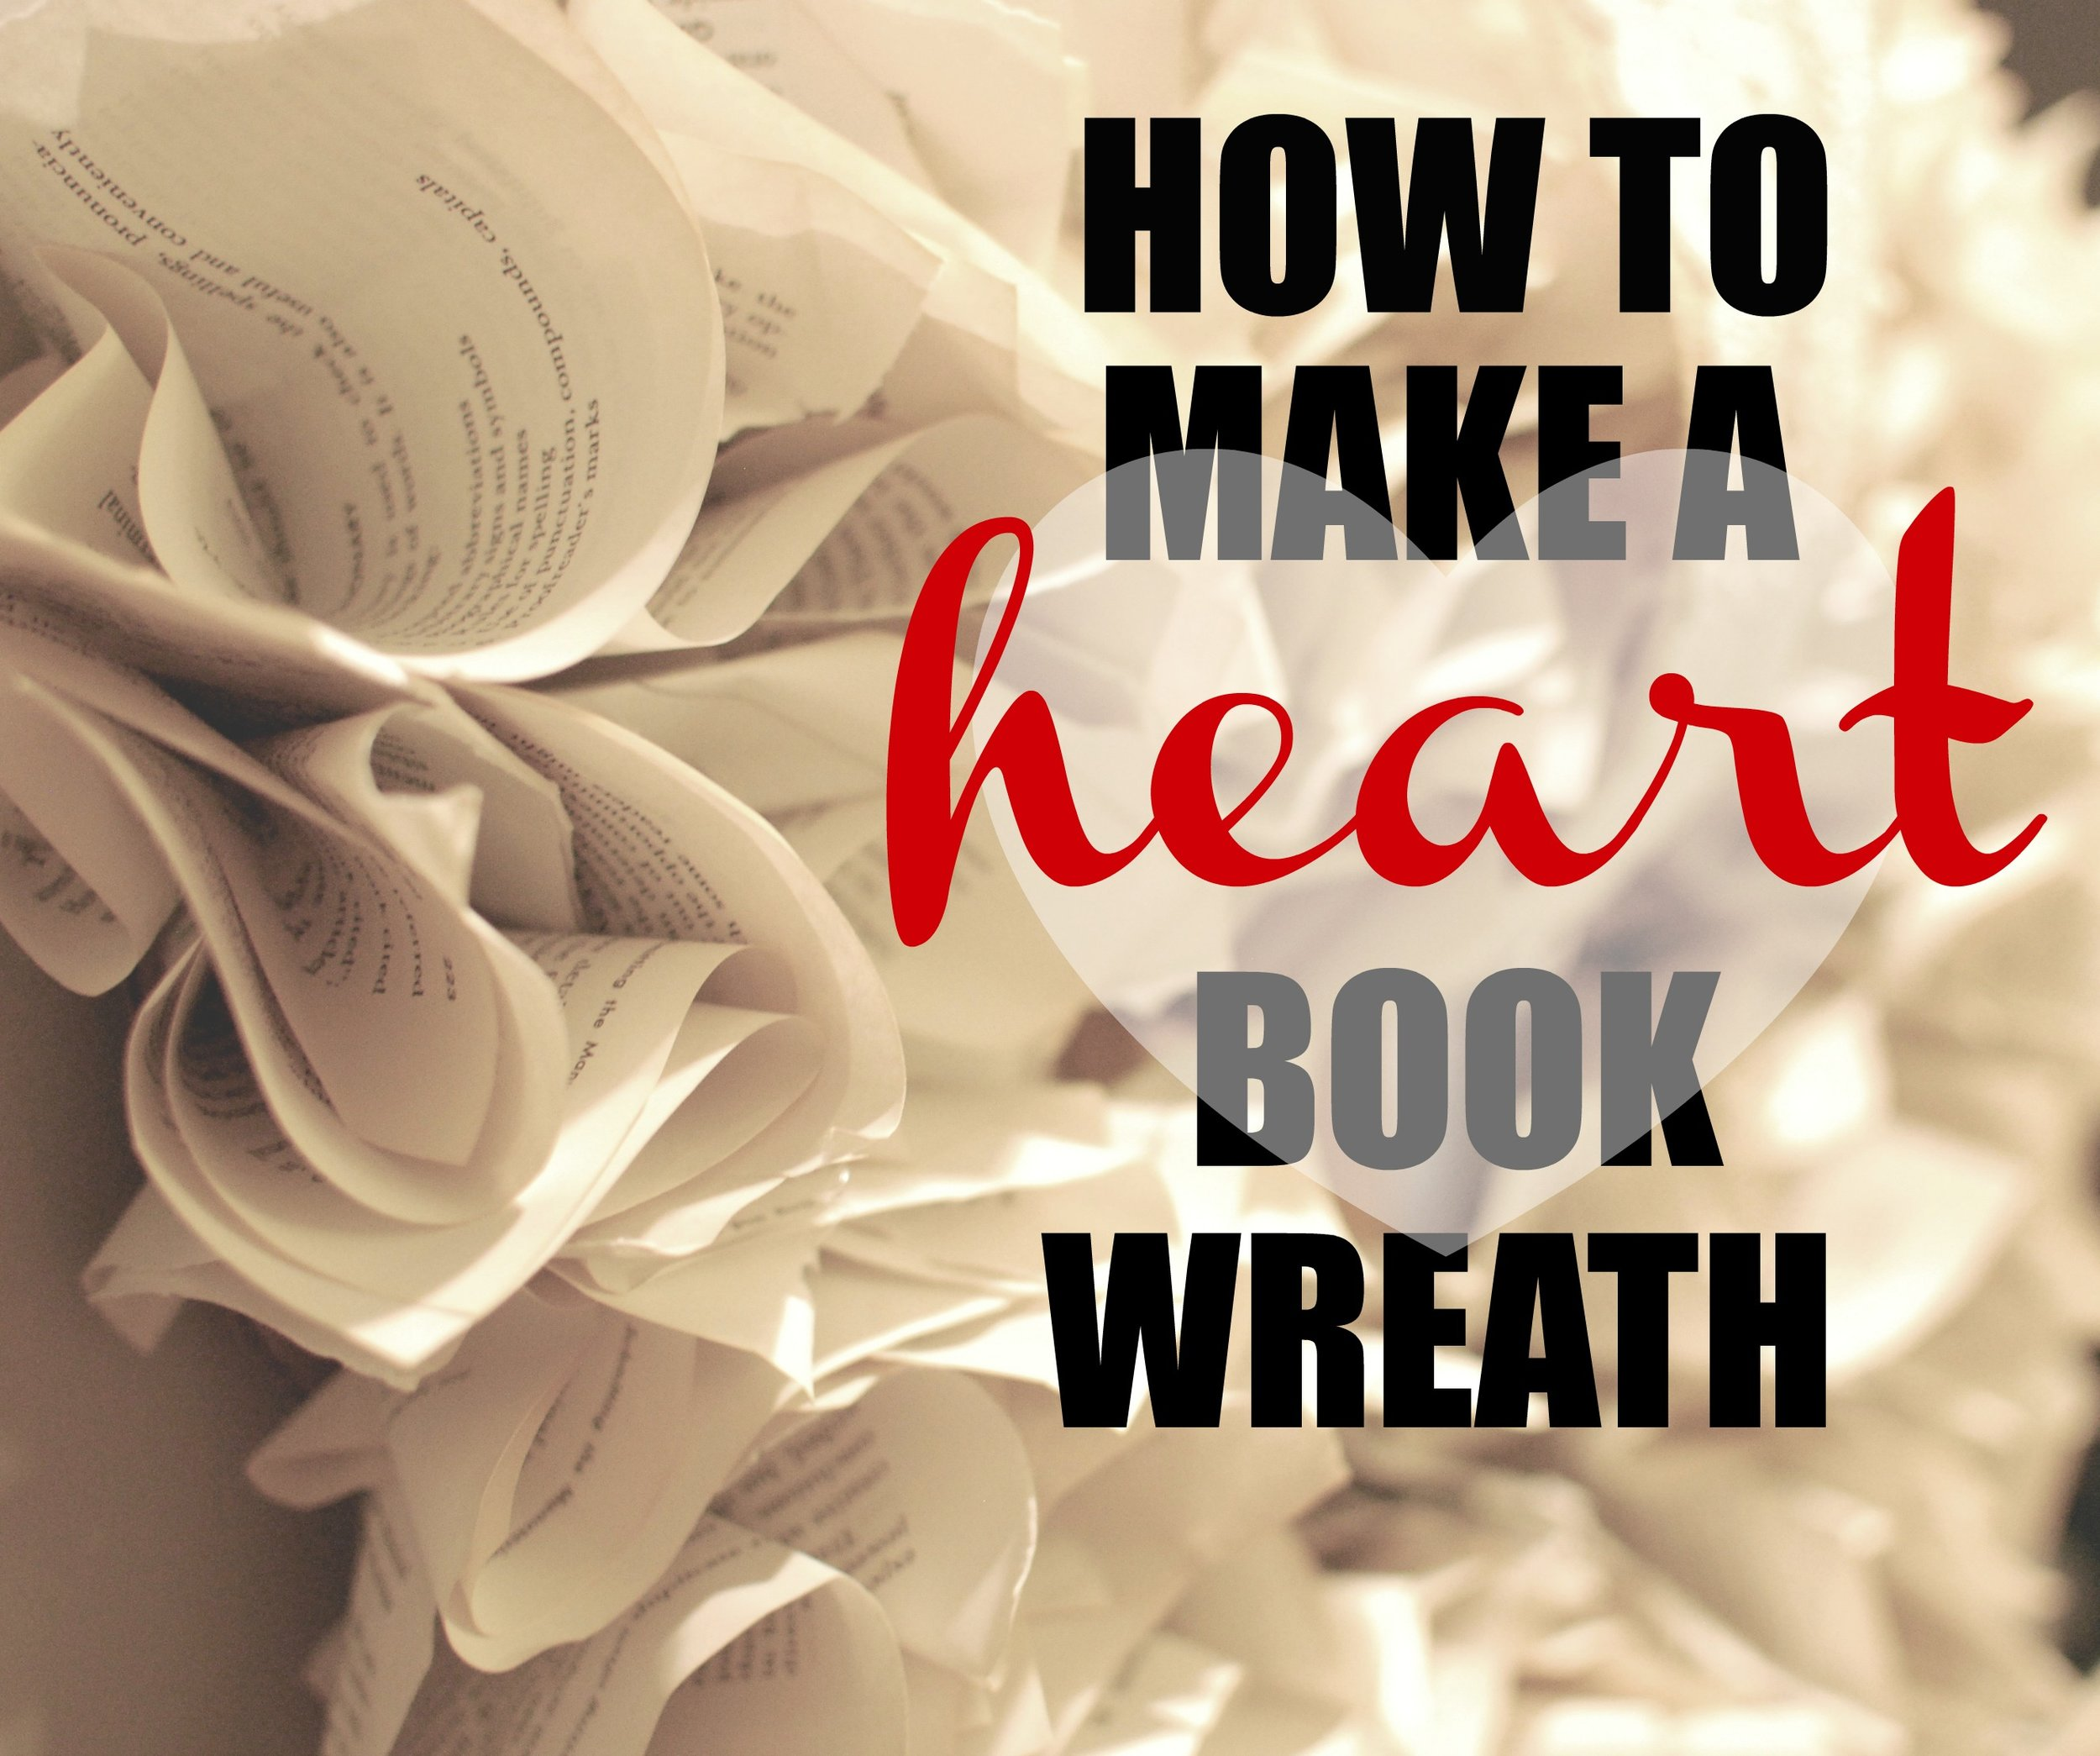 heart-book-wreath_pin1.jpg